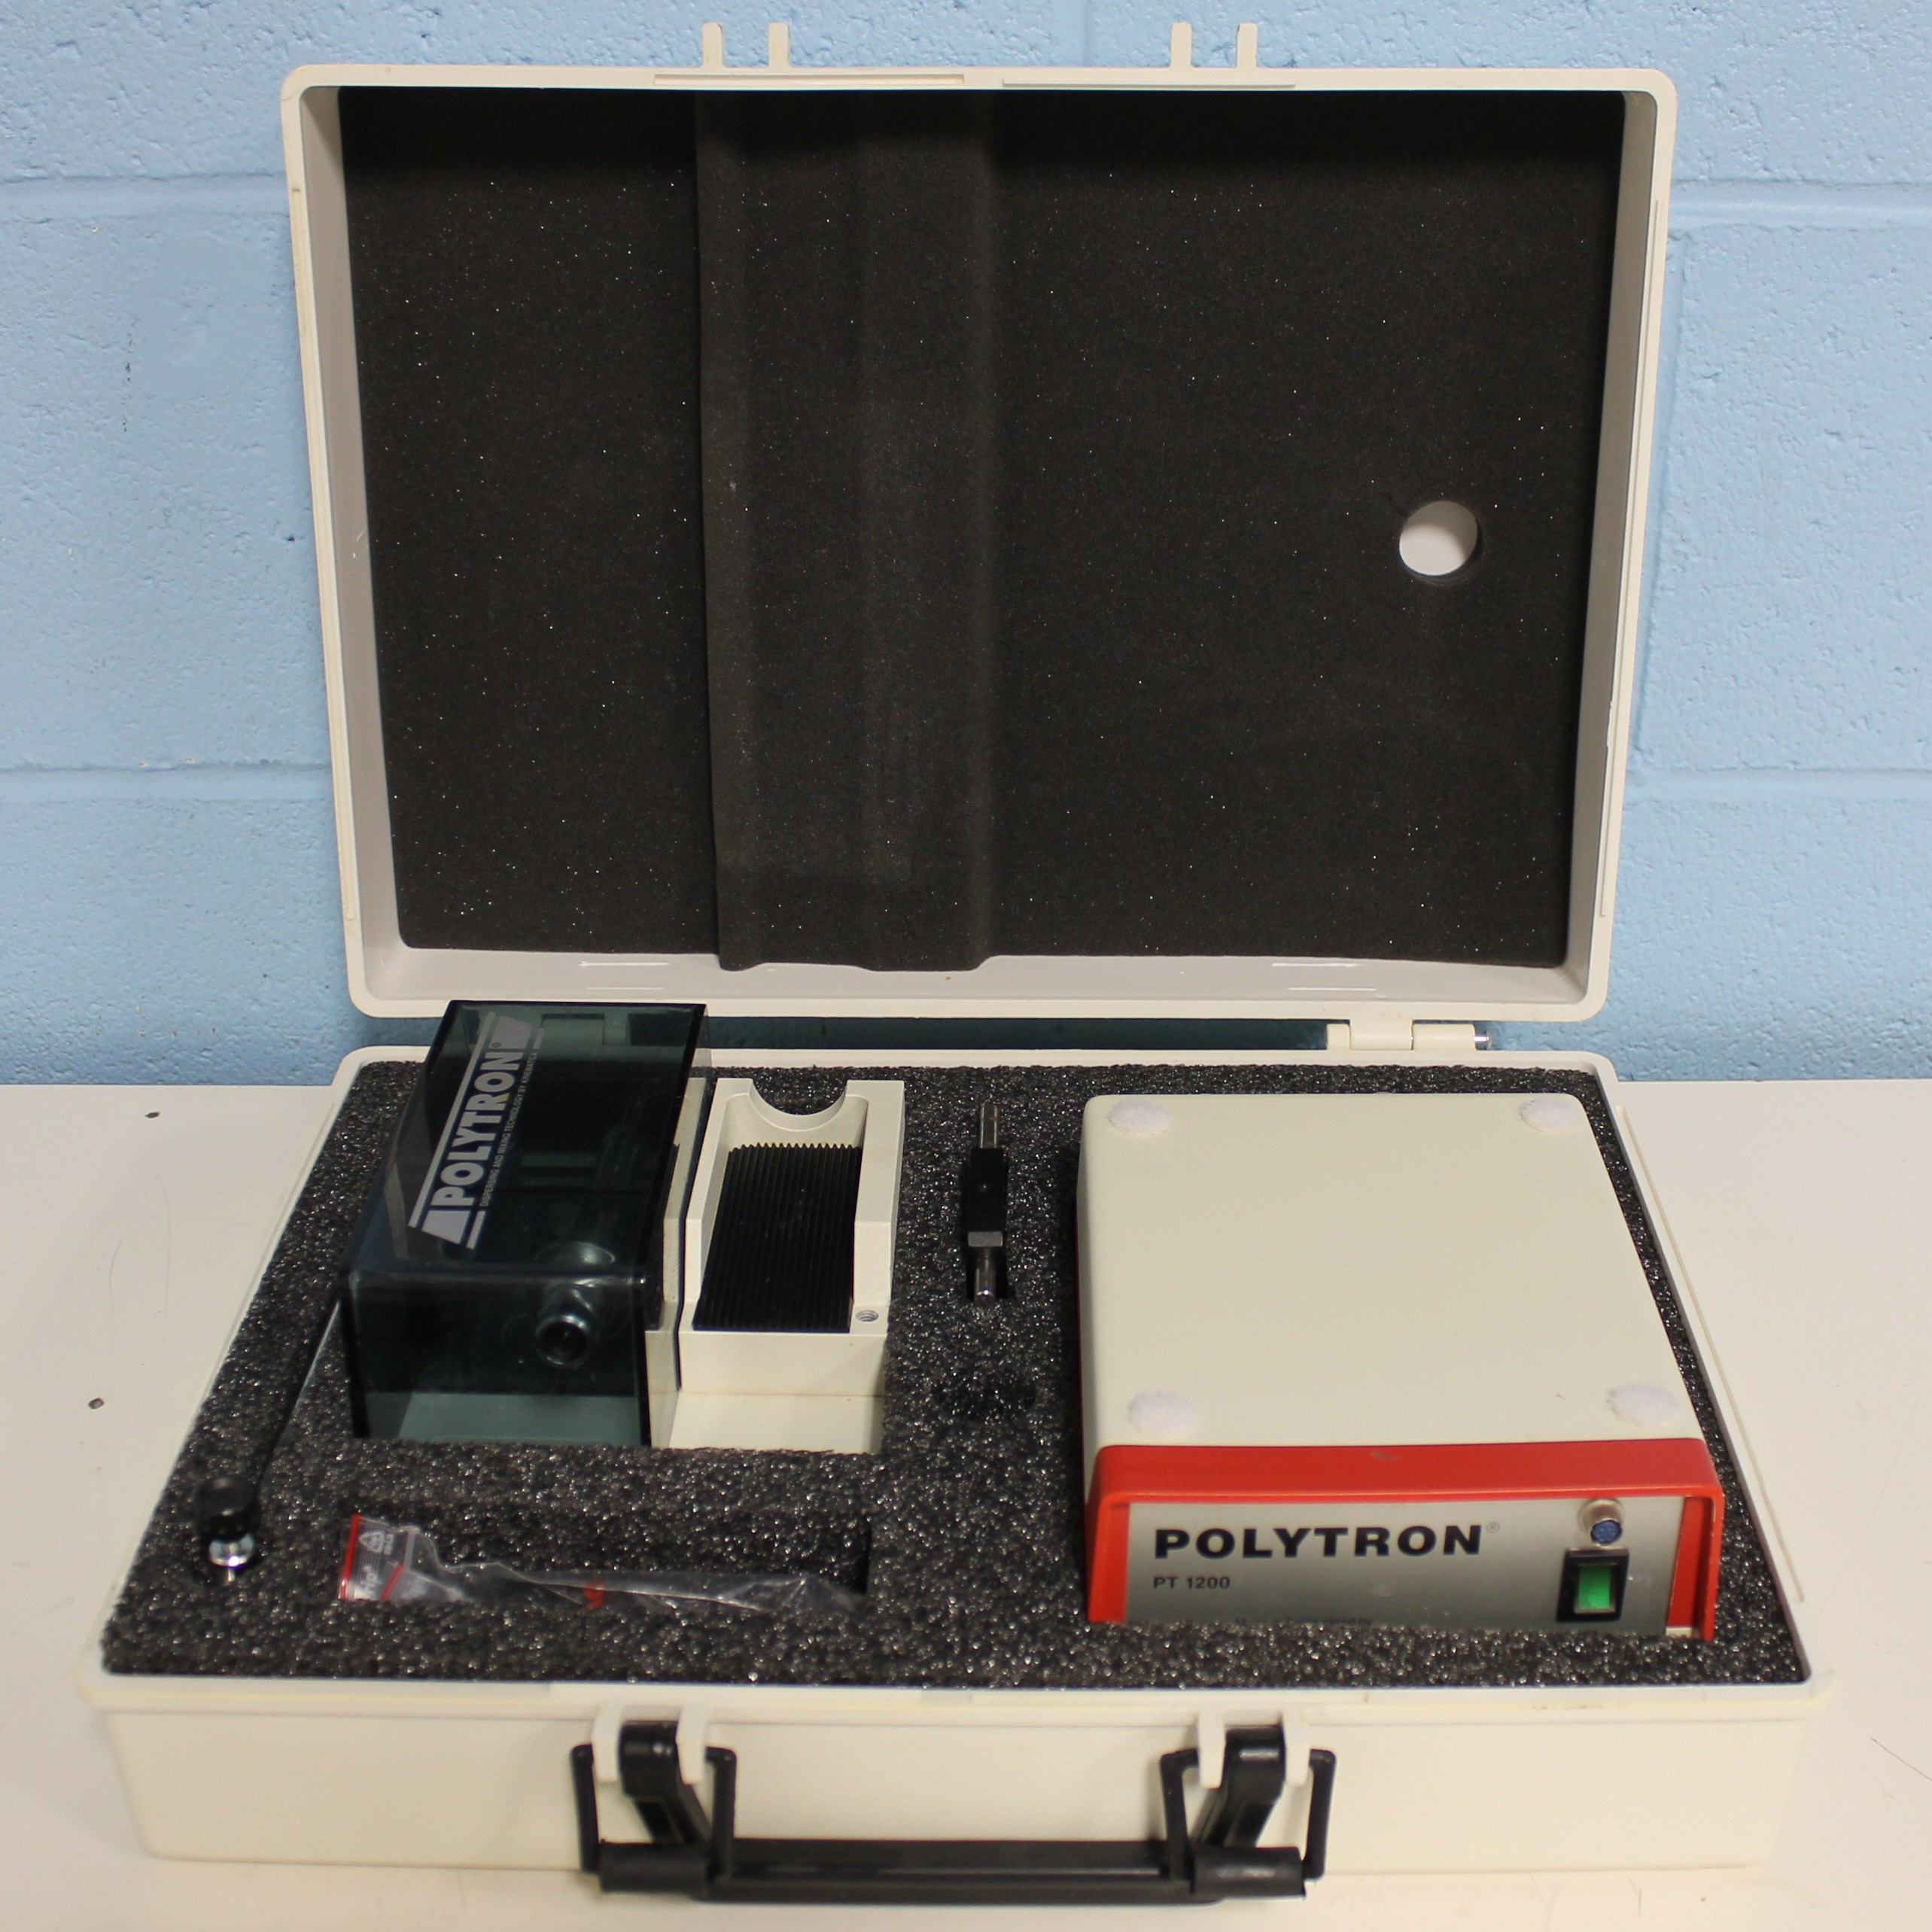 Kinematica POLYTRON PT 1200 C Power and Supply Unit Image